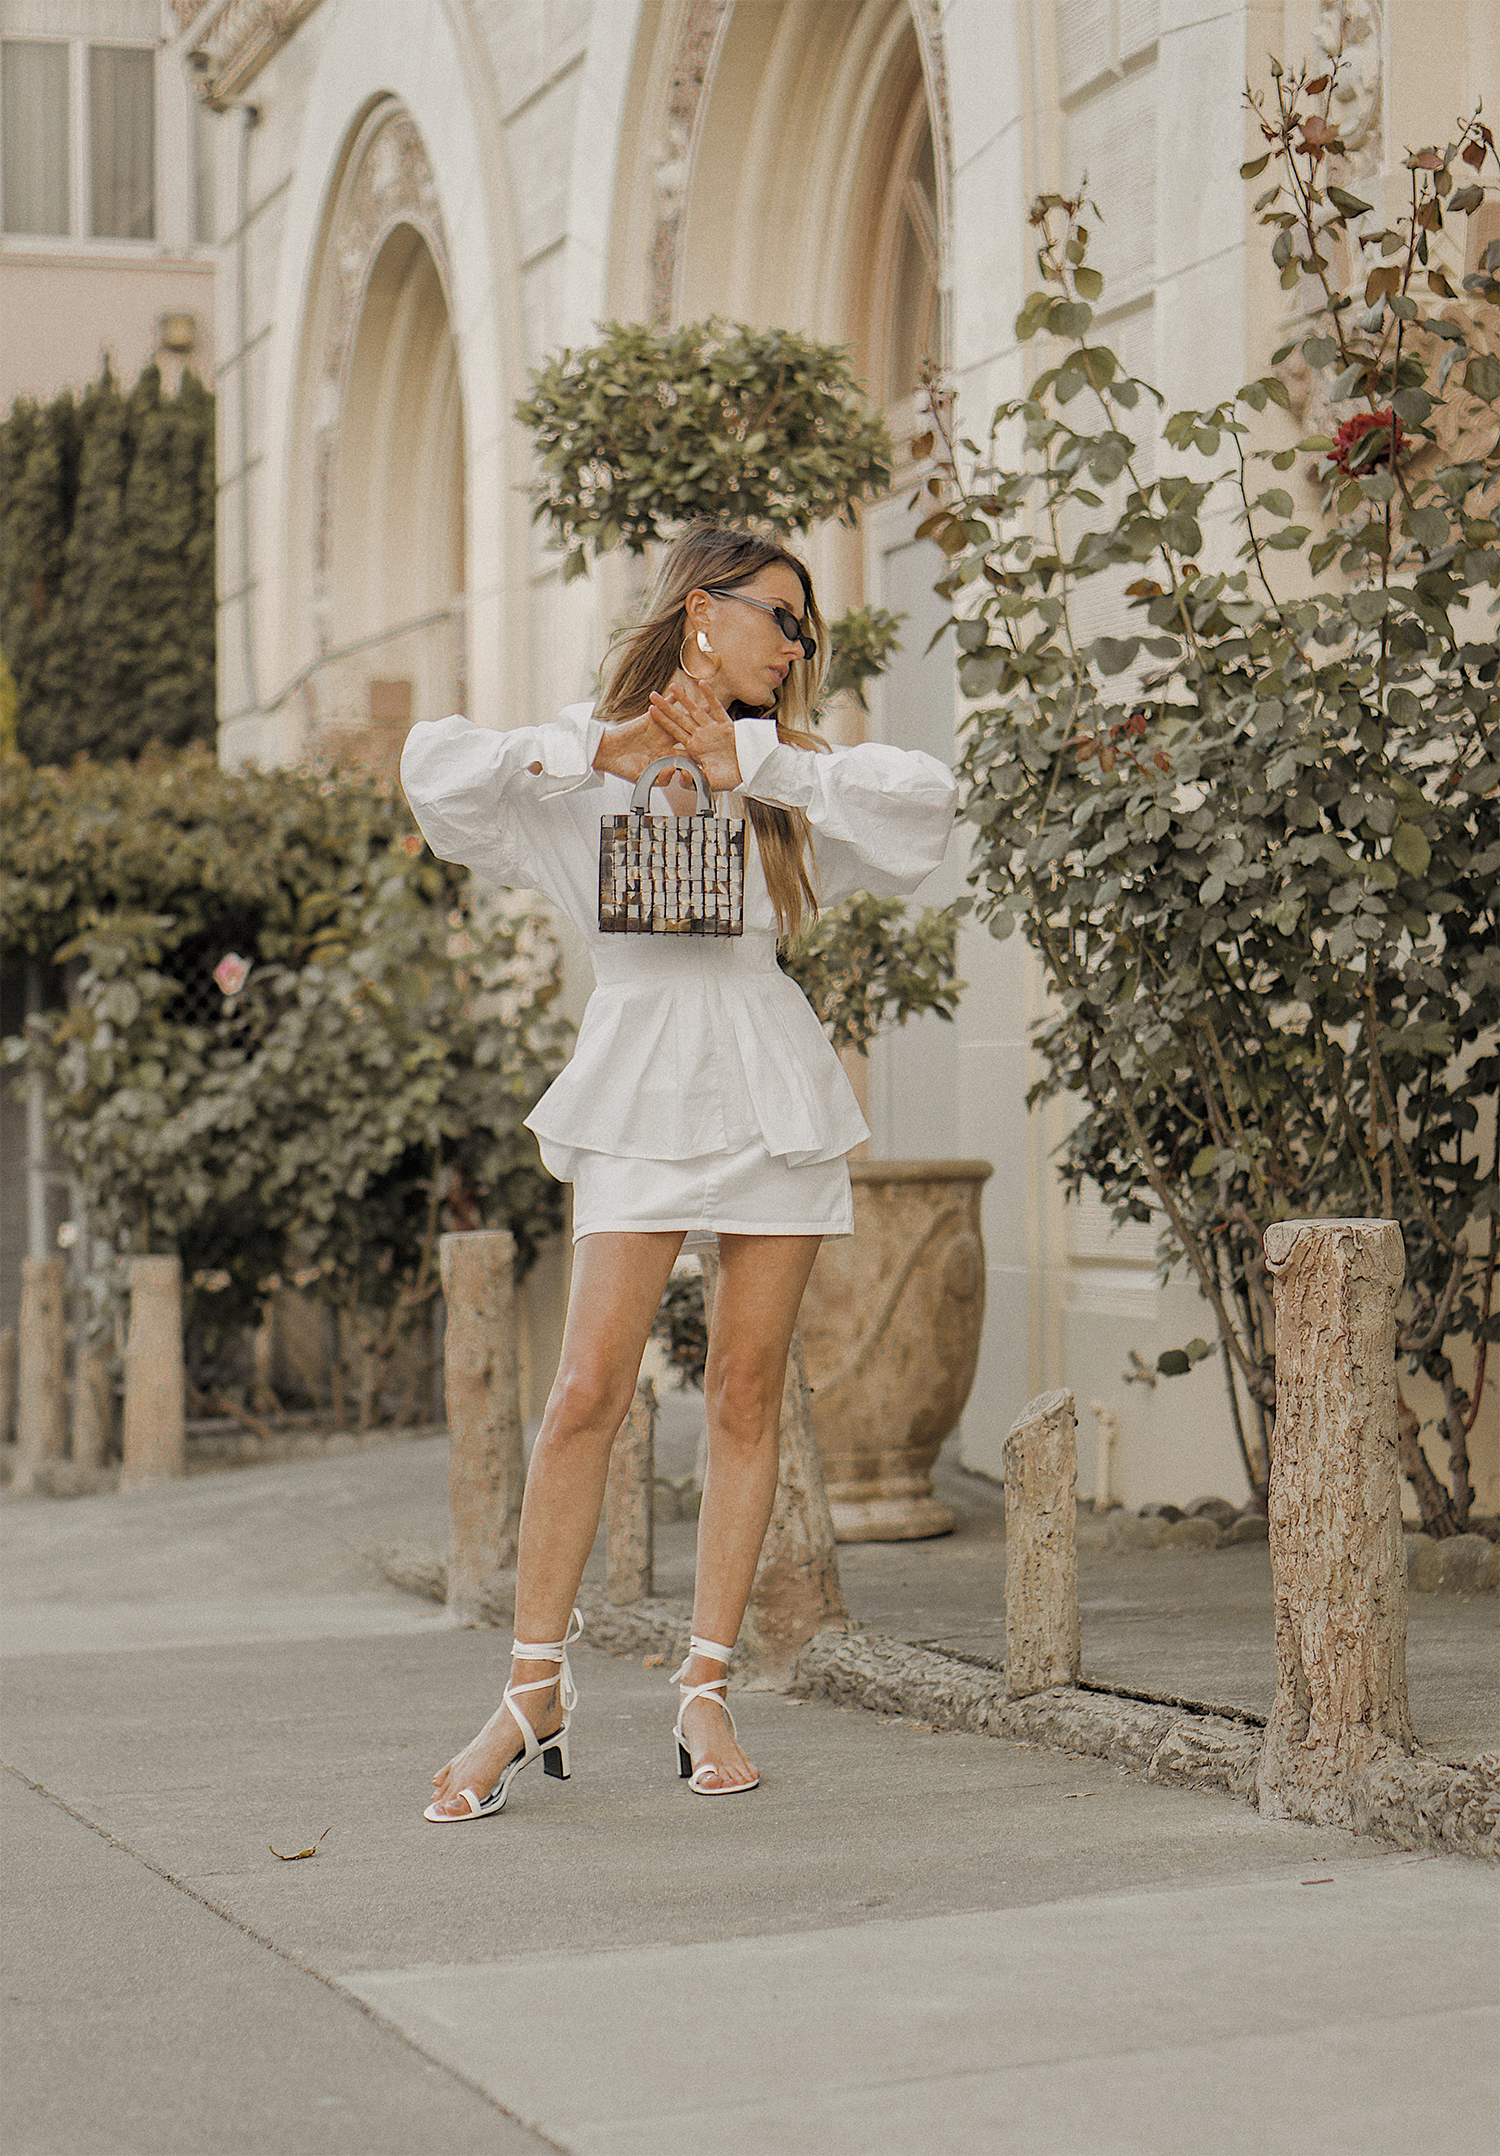 white_outfit_look_ideas_street_style_total_white_Céline_inspired_Ring_Toe_Lace_Up_Sandals_summer_san_francisco_fashion_blogger_bay_area_the_white_ocean_lena_juice_06